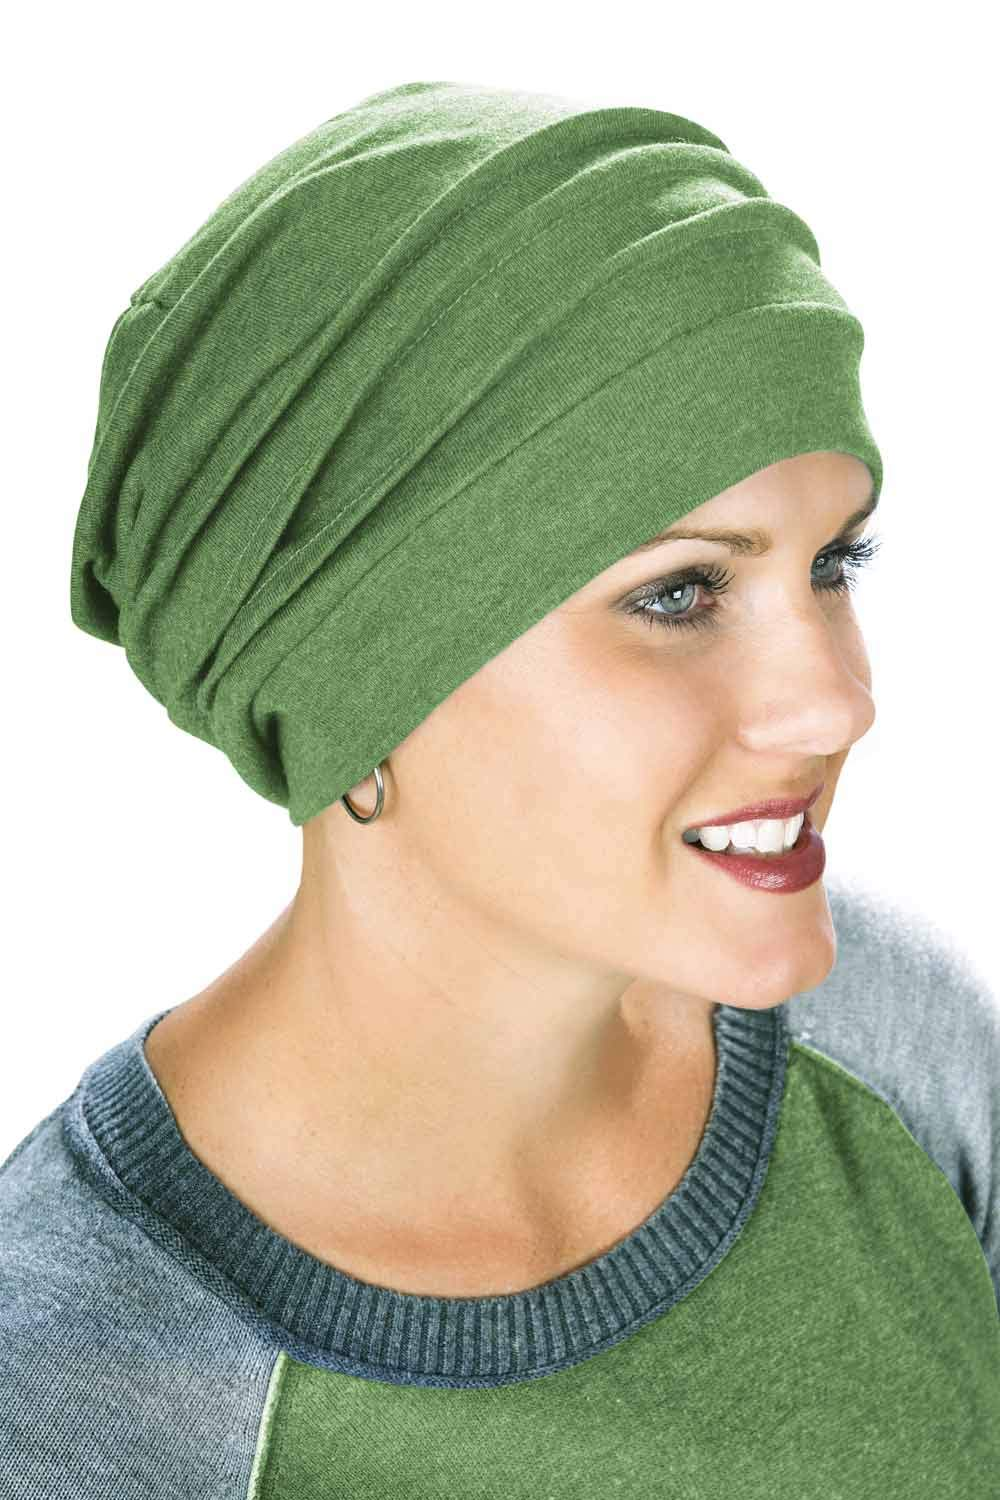 Headcovers Unlimited 100% Cotton Slouchy Snood Caps for Women with Chemo Cancer Hair Loss Green Clover